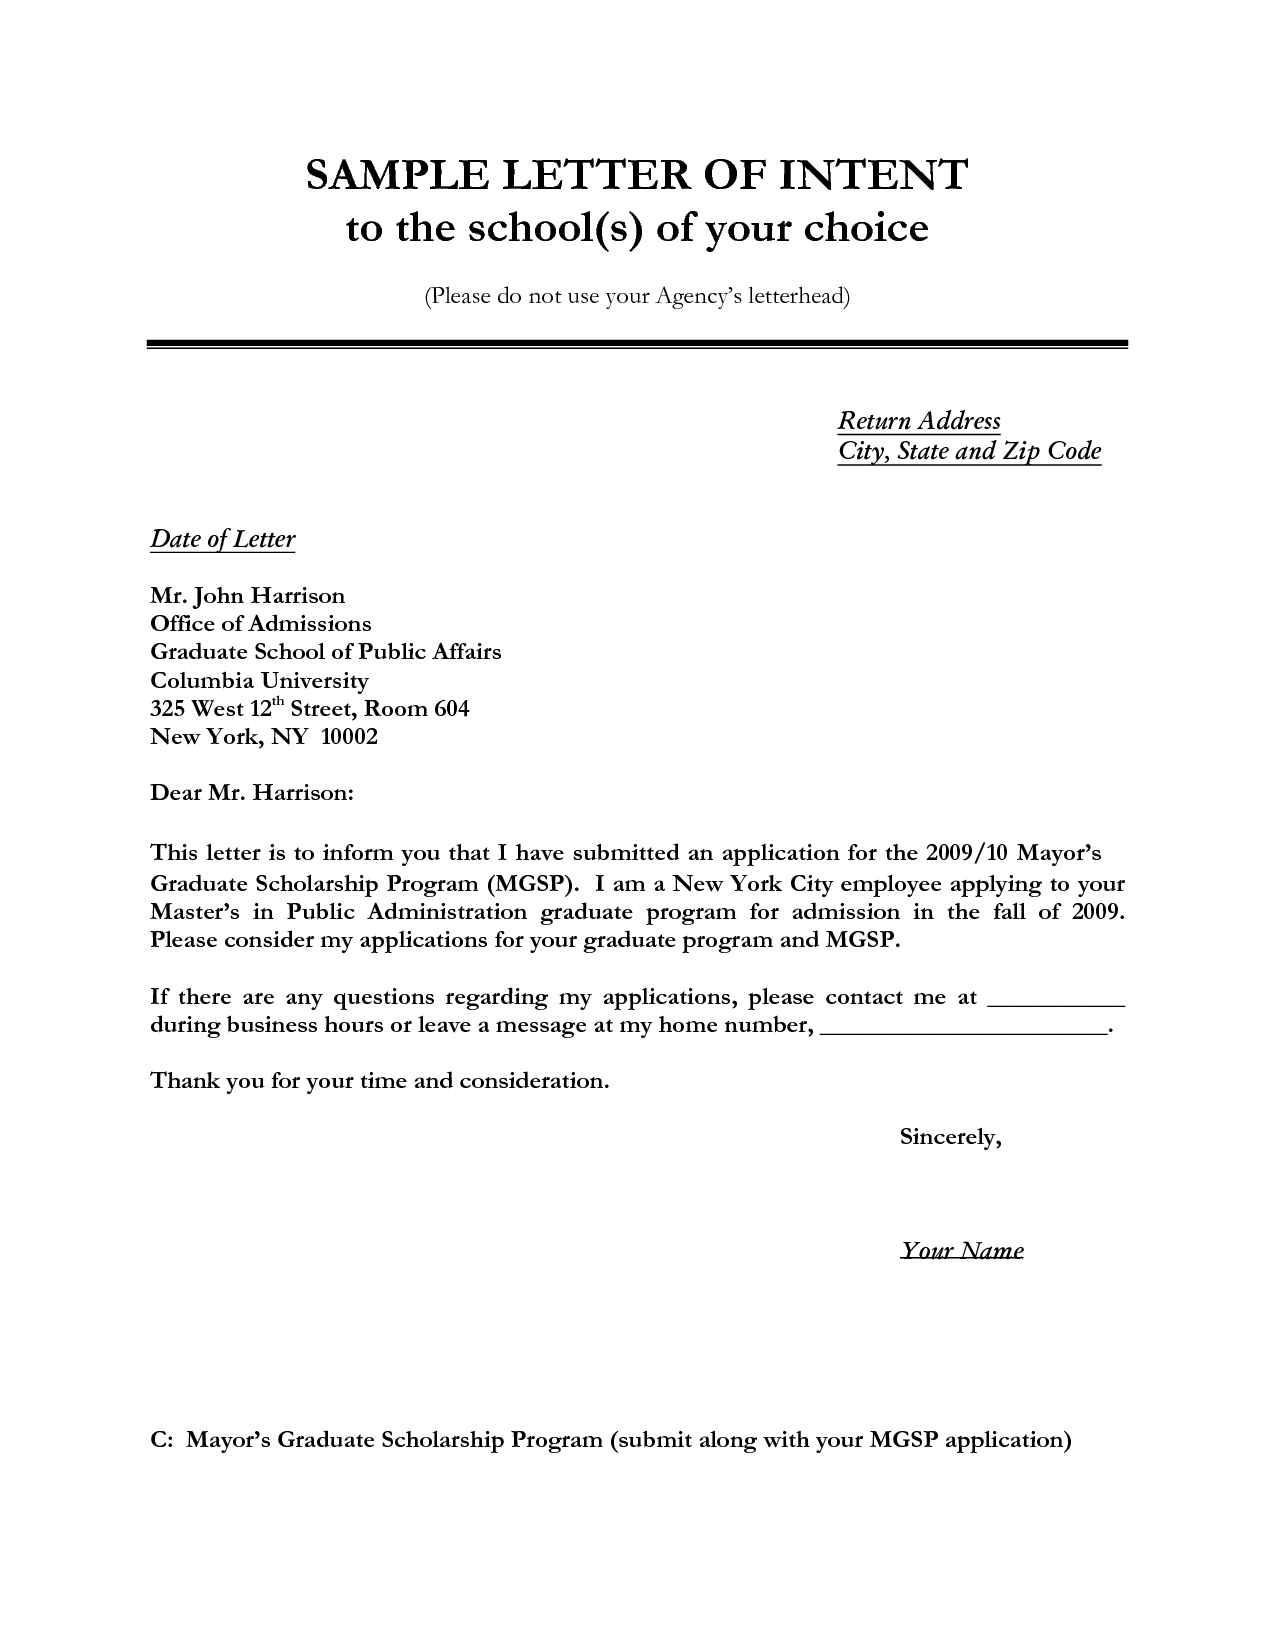 letter of intent template Collection-Letter of intent sample 2-e